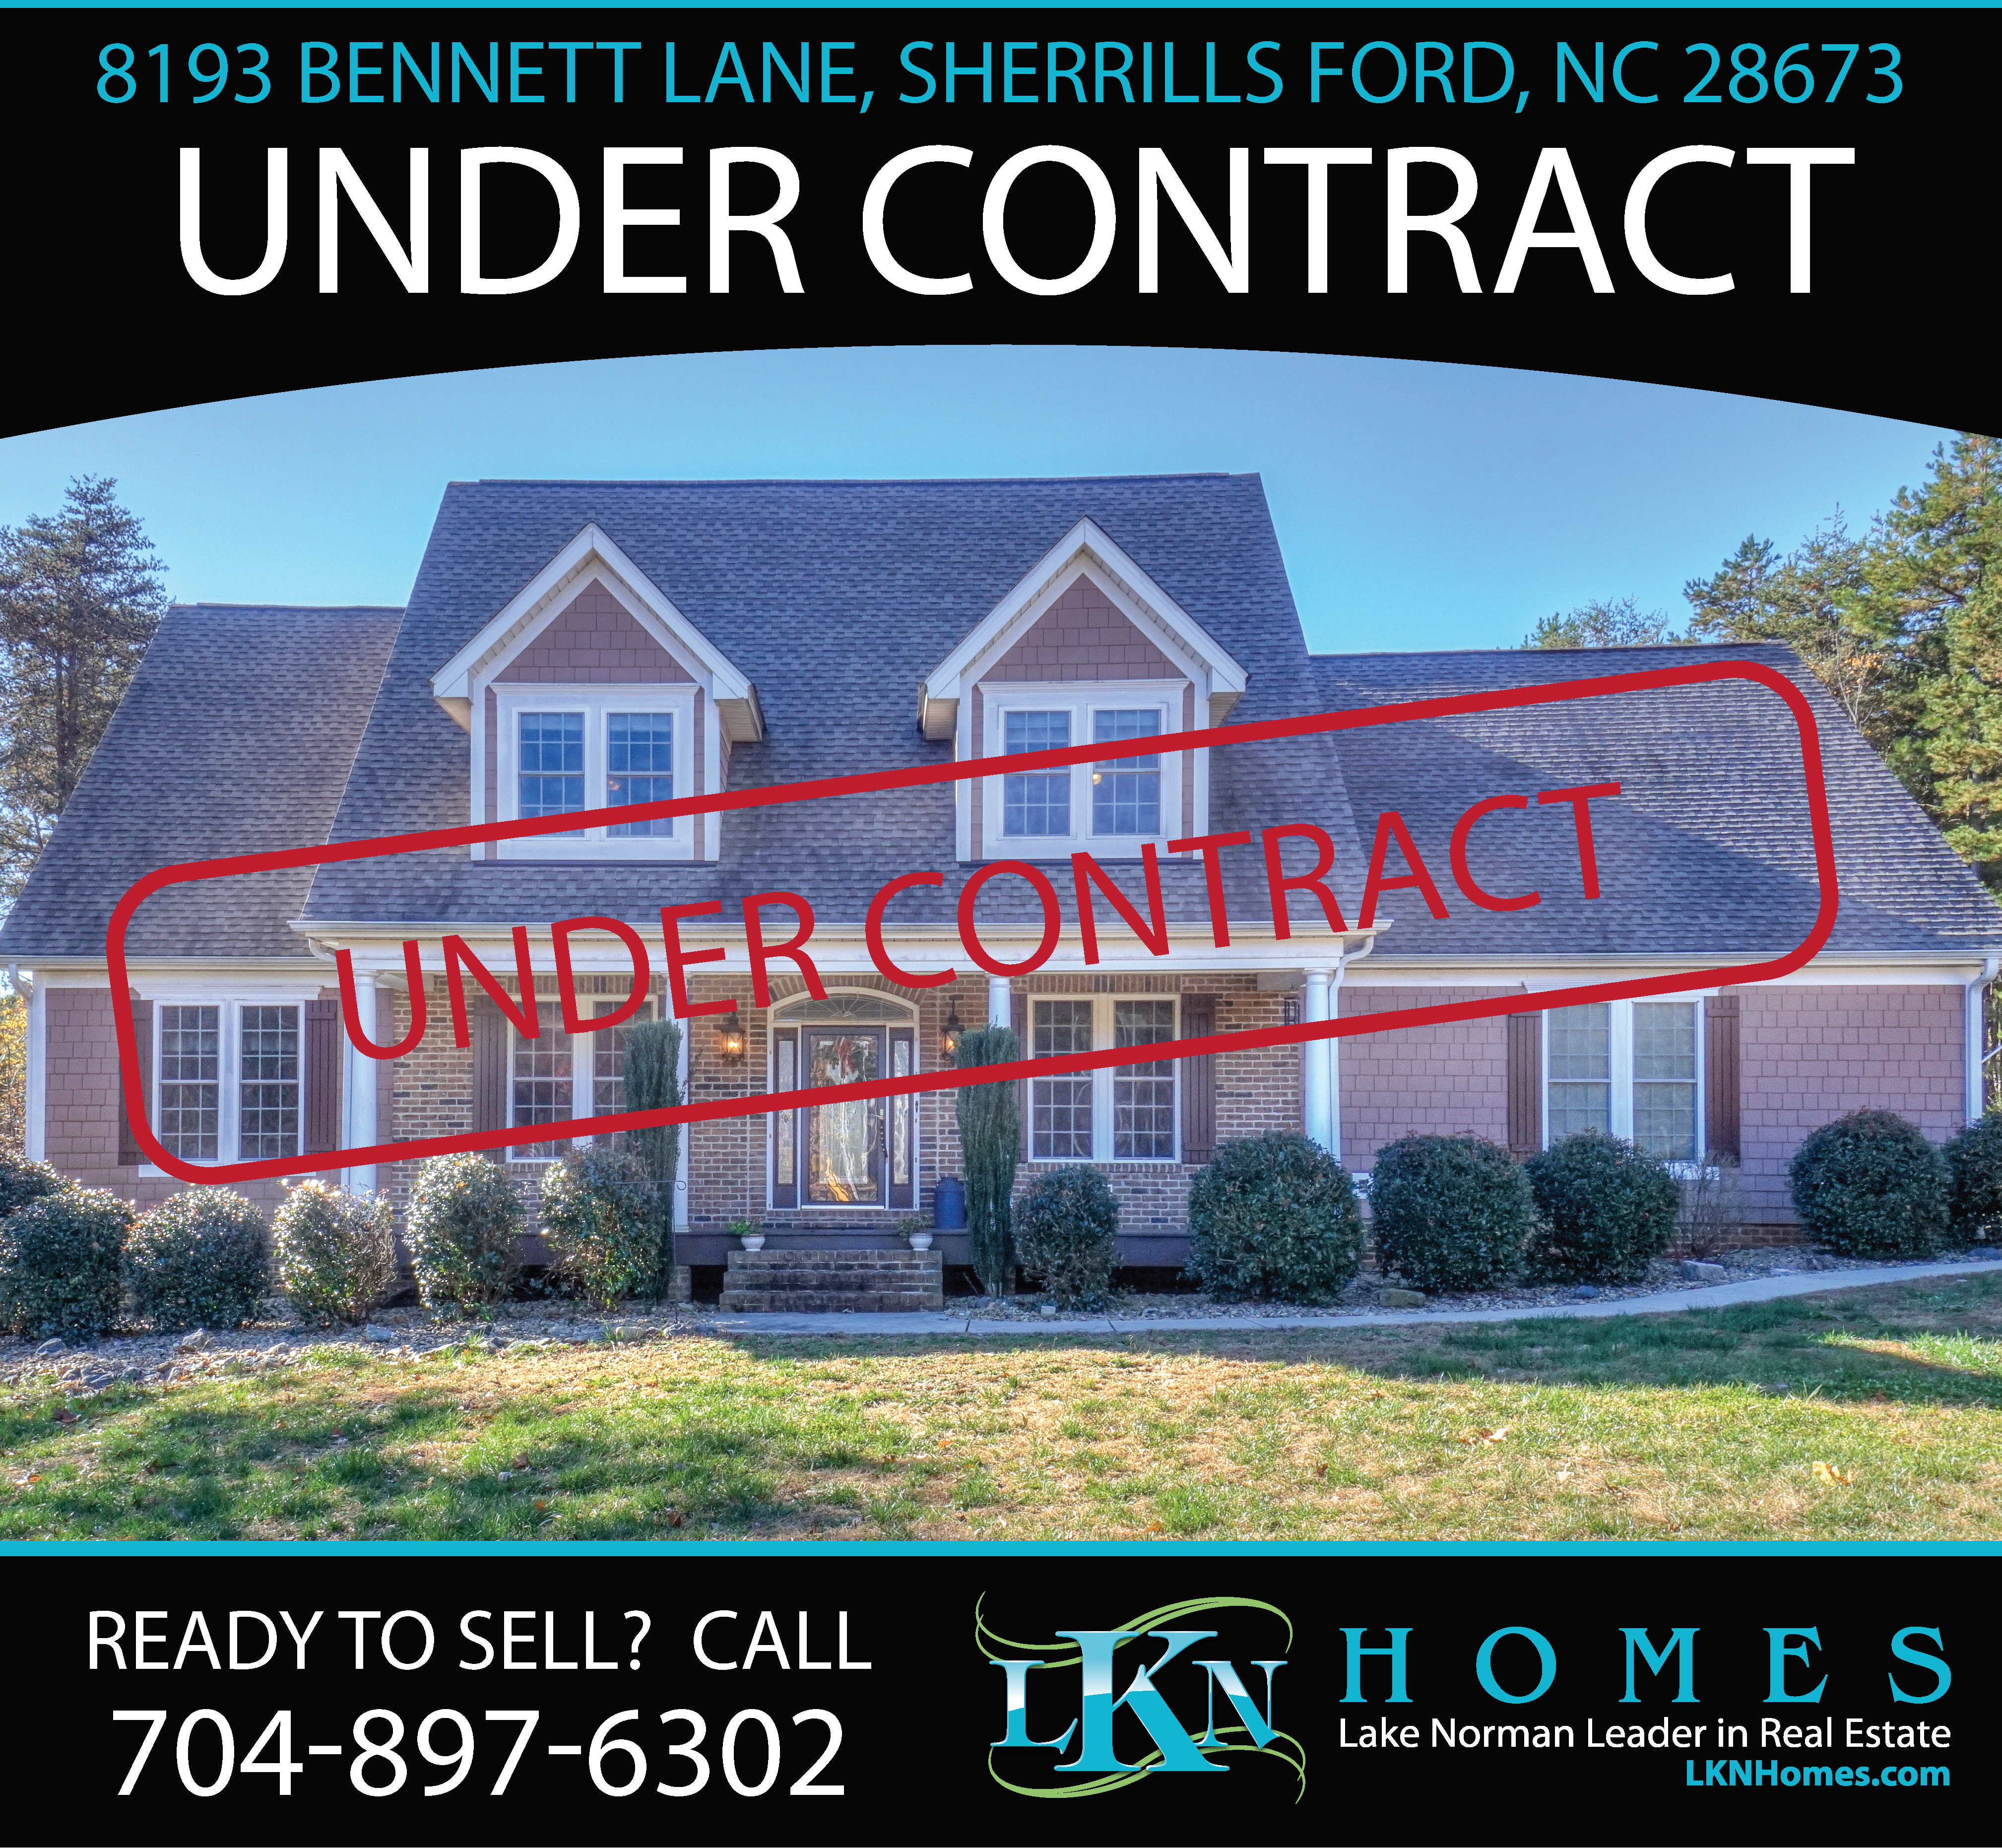 Under Contract In Sherrills Ford Ready To Sell Call 704 897 6302 Things To Sell Sherrill Real Estate